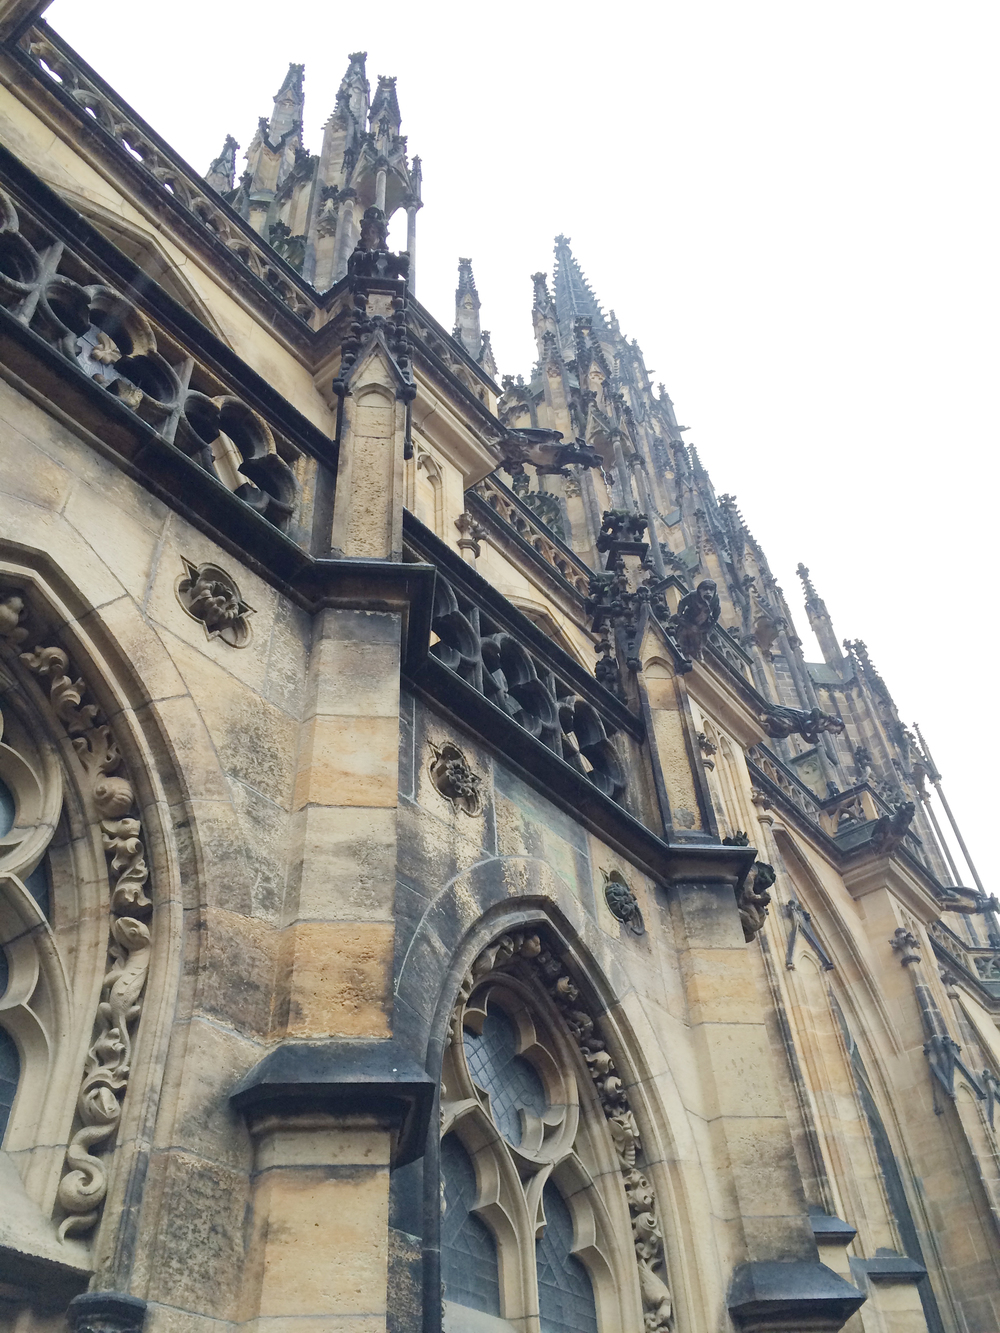 The exterior of the St. Vitus Cathedral.